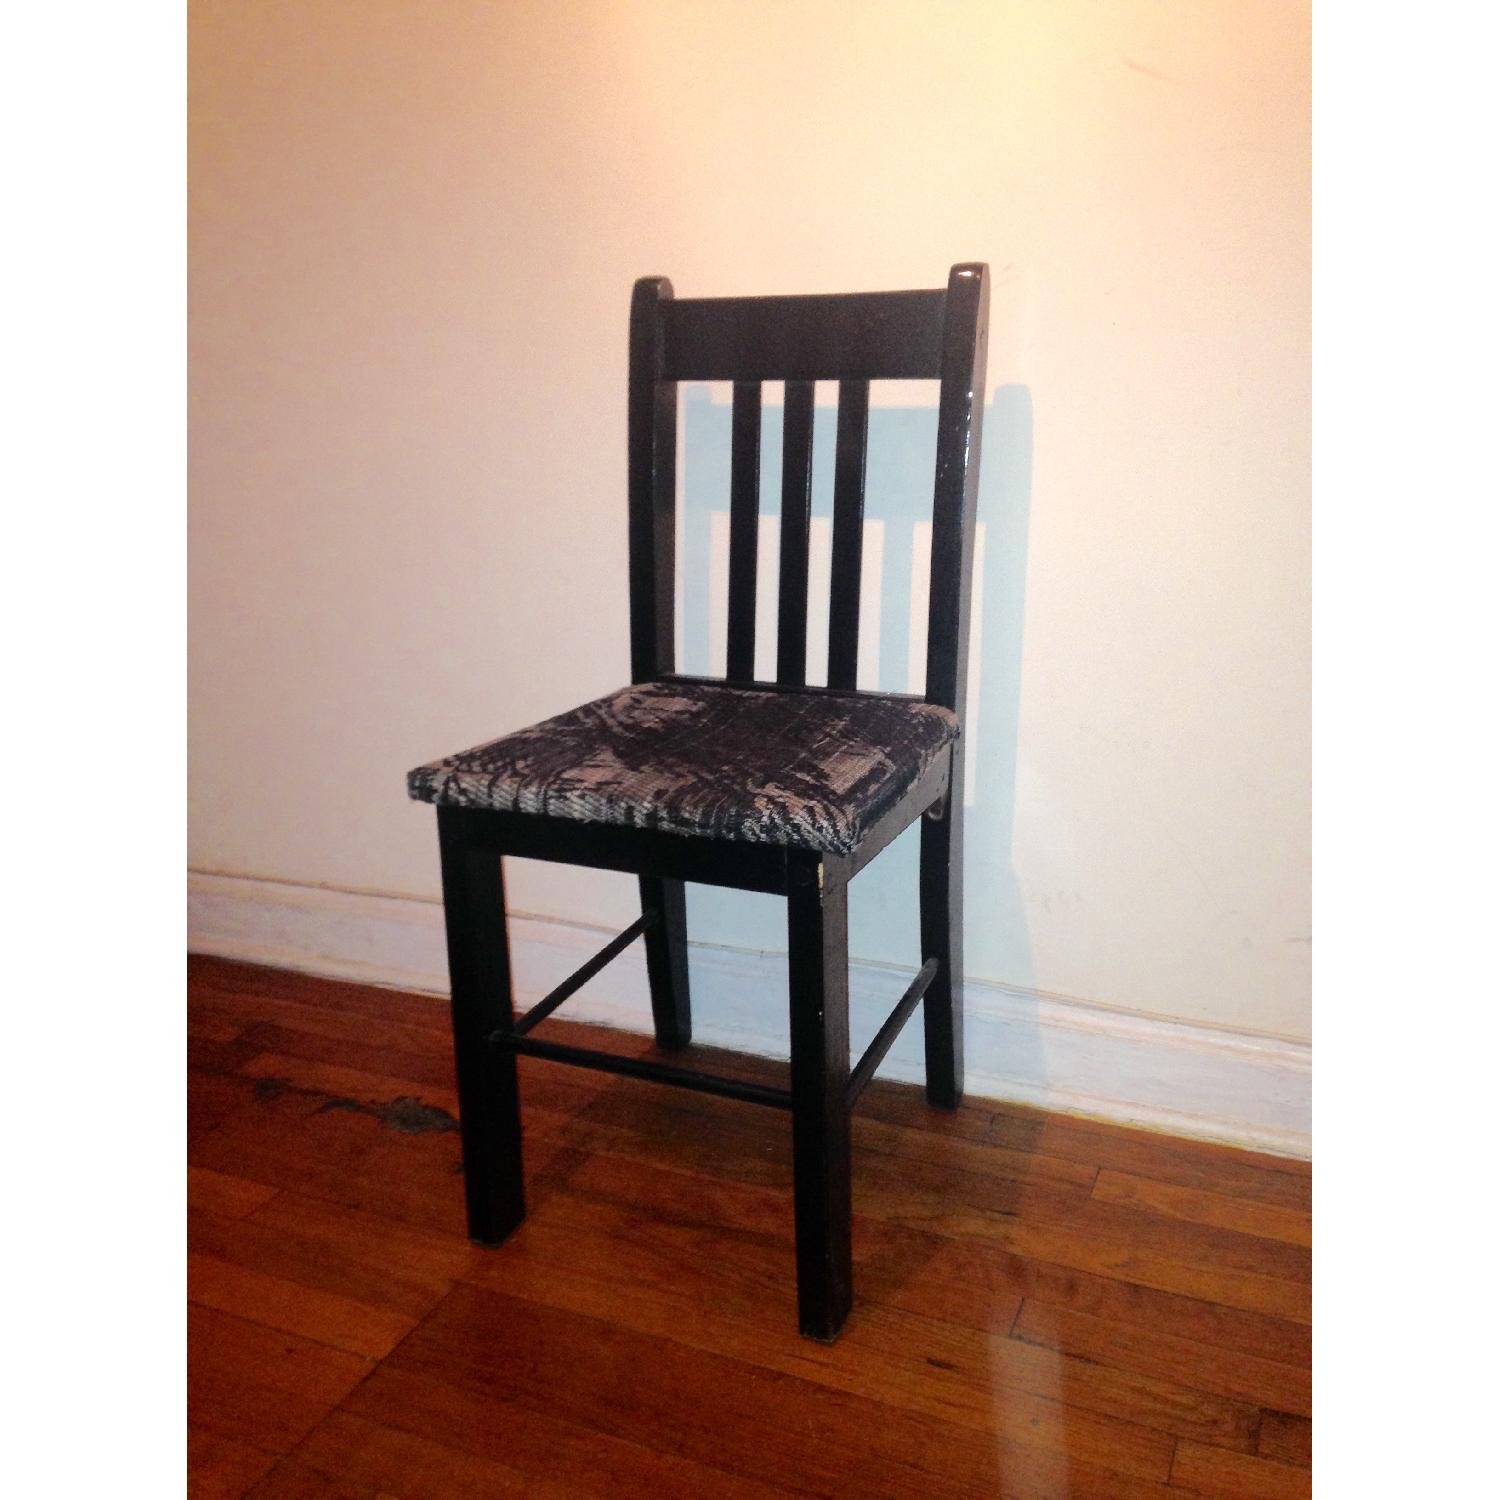 Retro Black Accent/Dining Chair w/ Knitted Fabric Seat - image-2